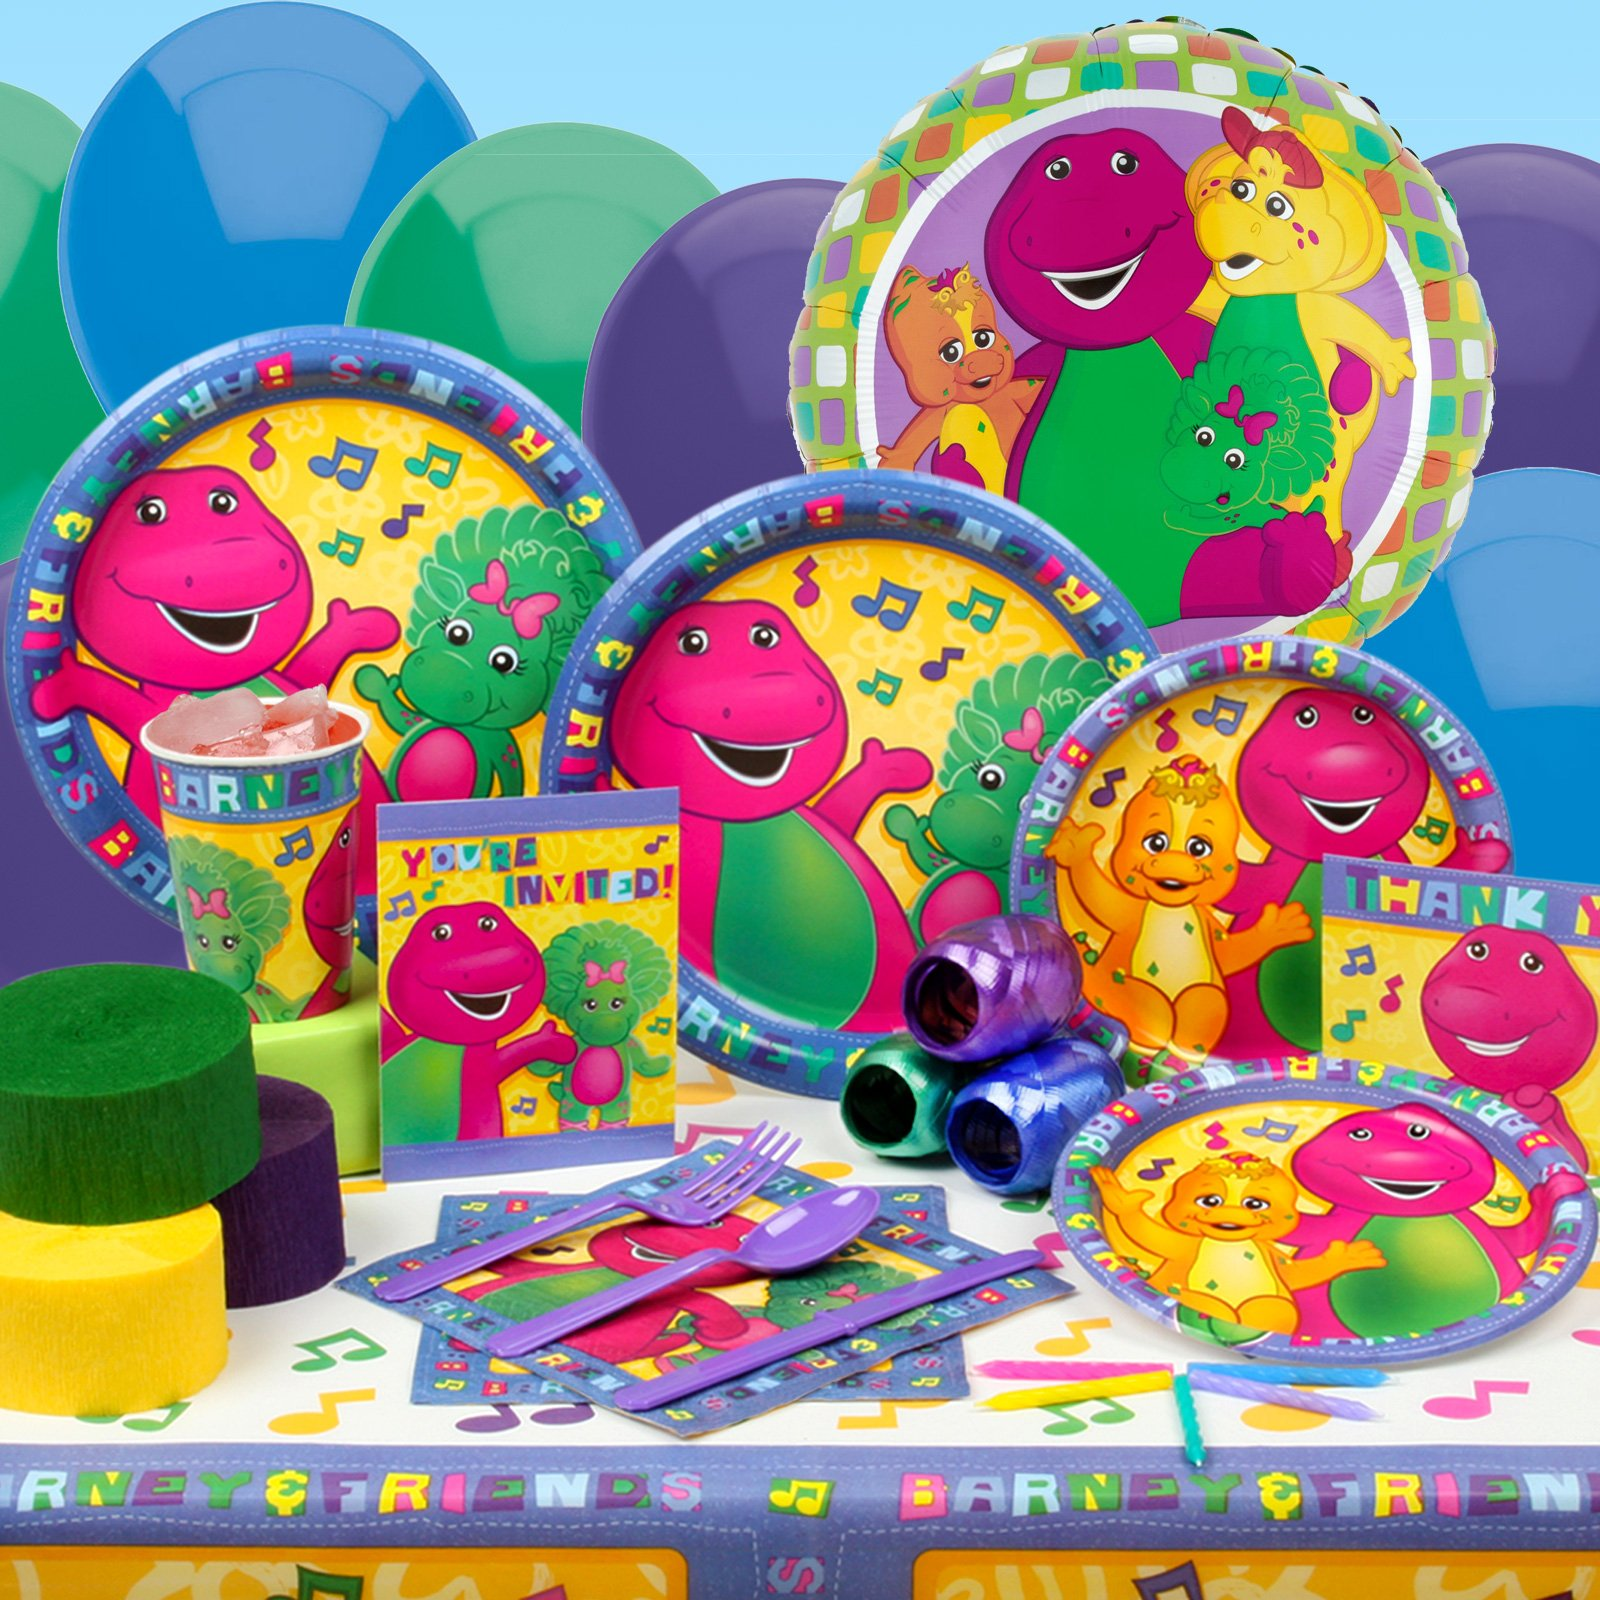 FavorCakes By Erica: Where The Hell Is Barney?